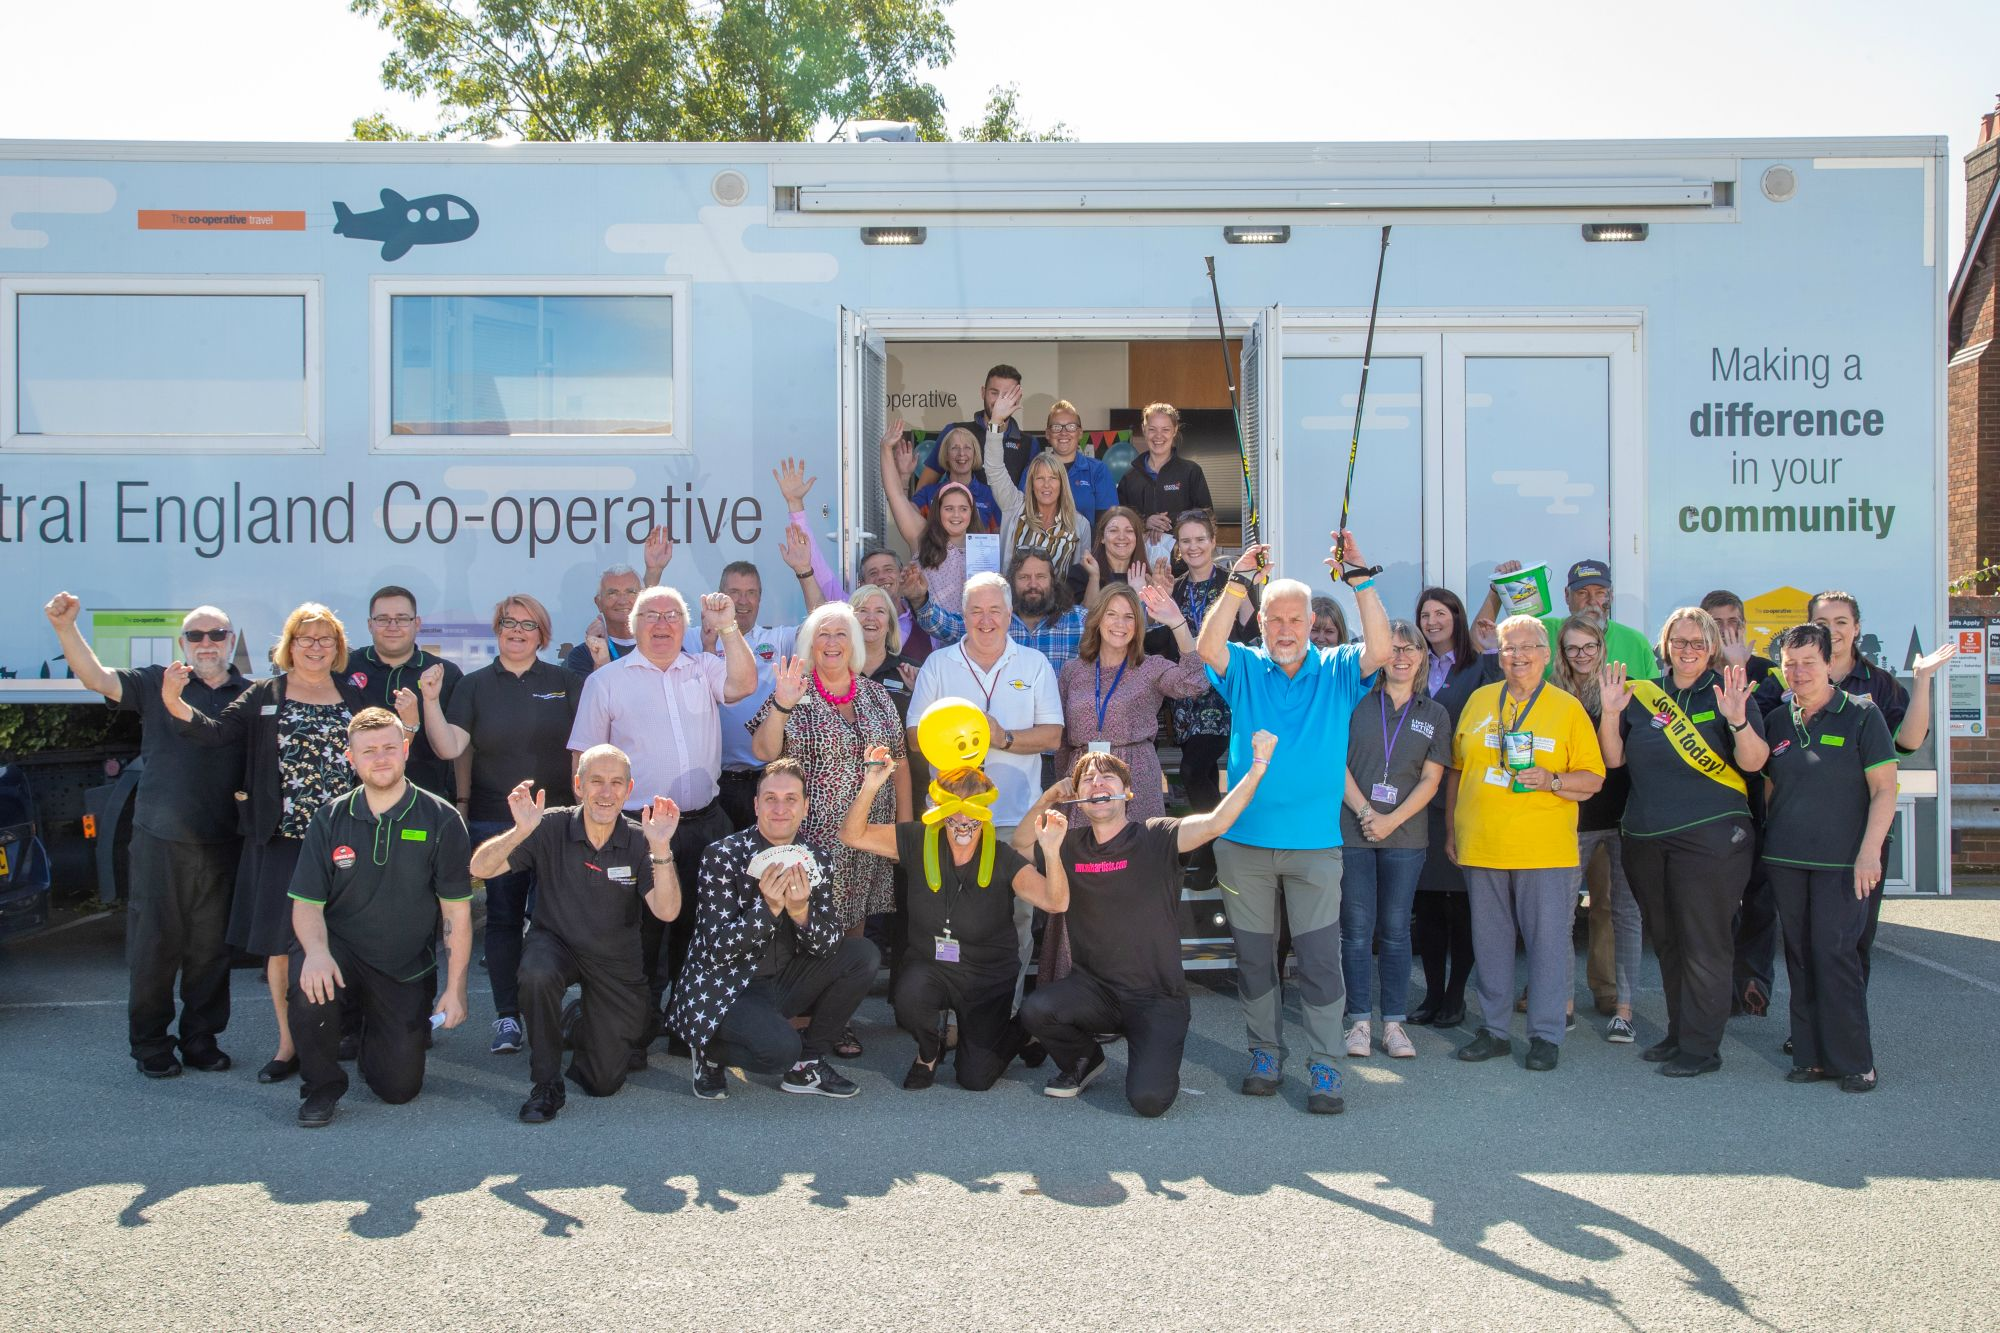 Magical charity fun day for families held at Ripley Central England Co-op